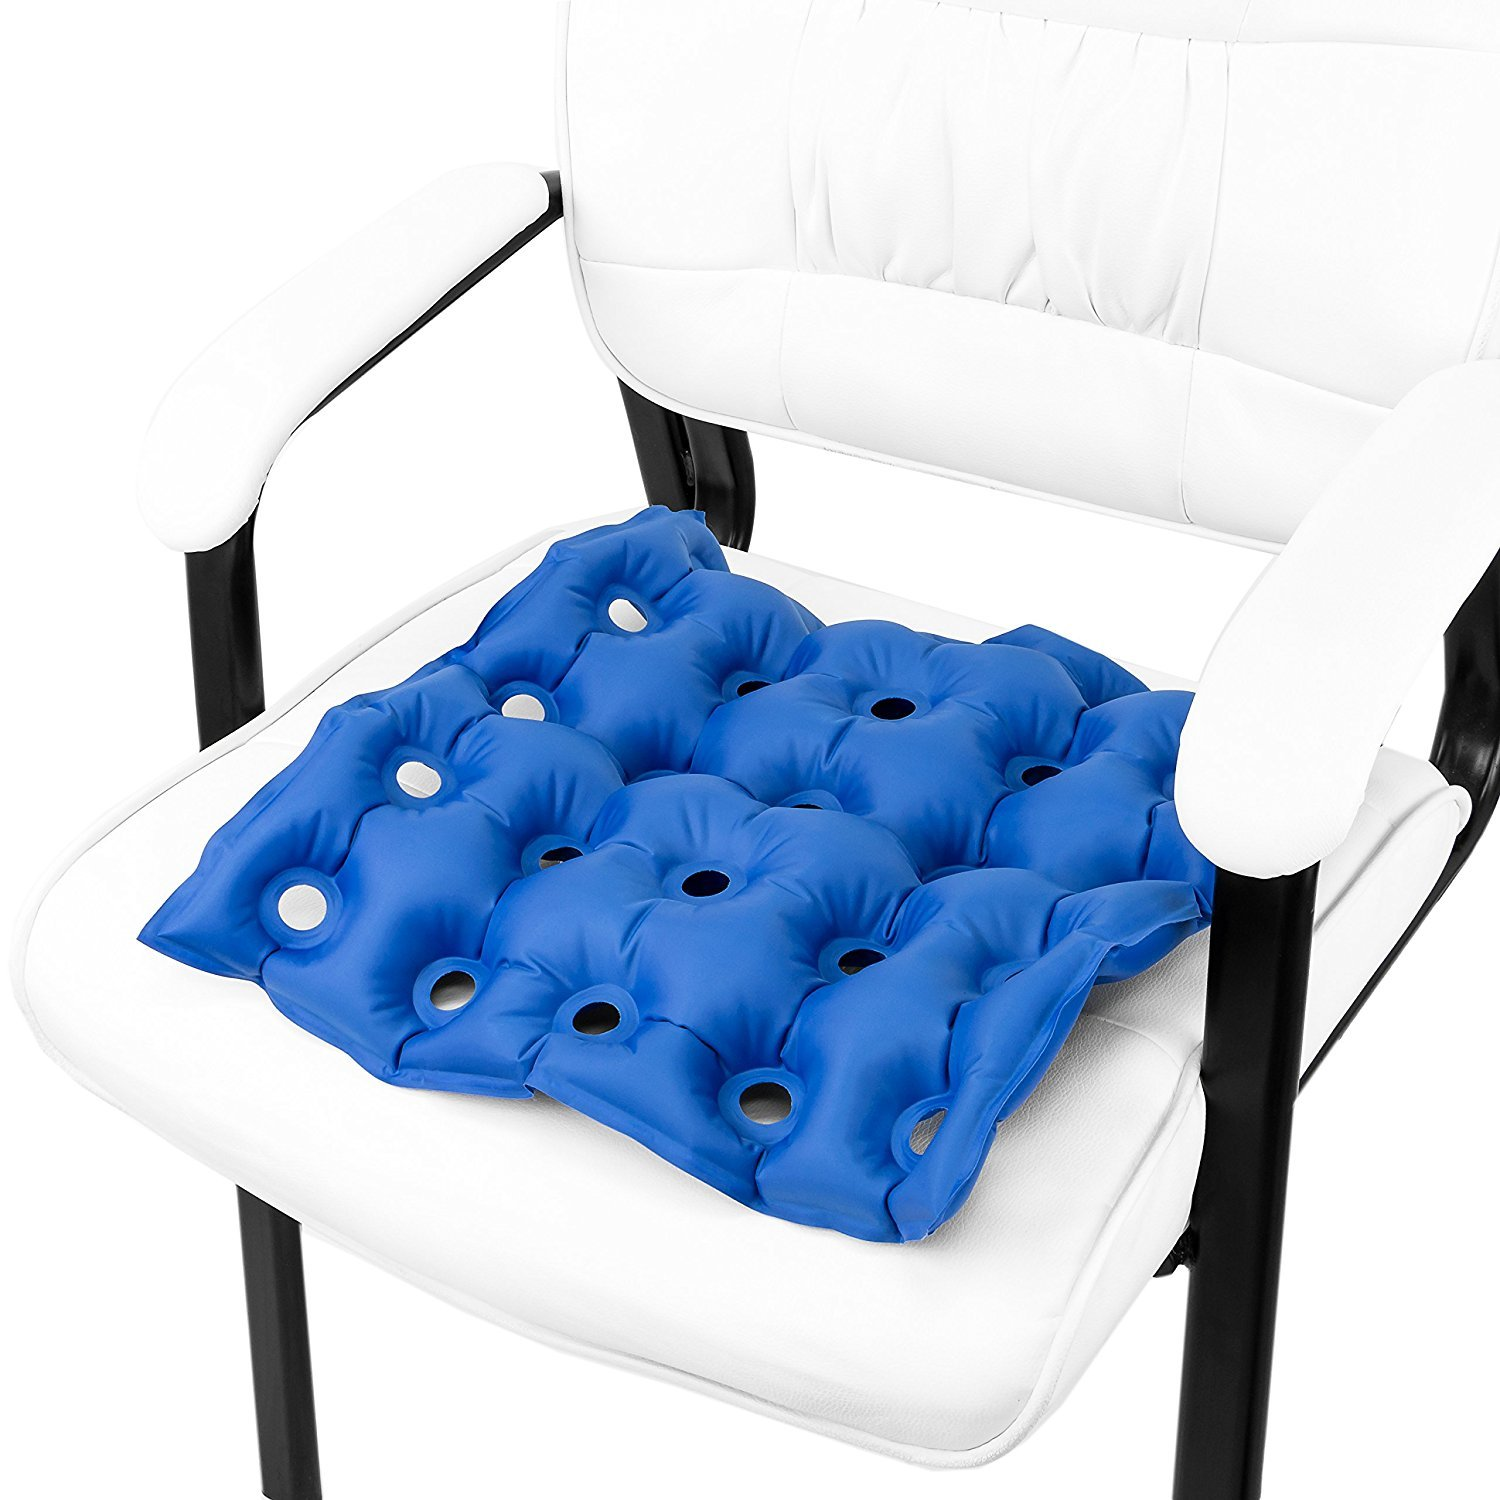 Premium Air Inflatable Seat Cushion 17 X 17 Heat Sealed Construction for Durabilityd Cushion for Wheel Chair and Day to Day Use  Ideal for Prolonged Sitting FDA Approved Blue by EMS Extend Medical Supply